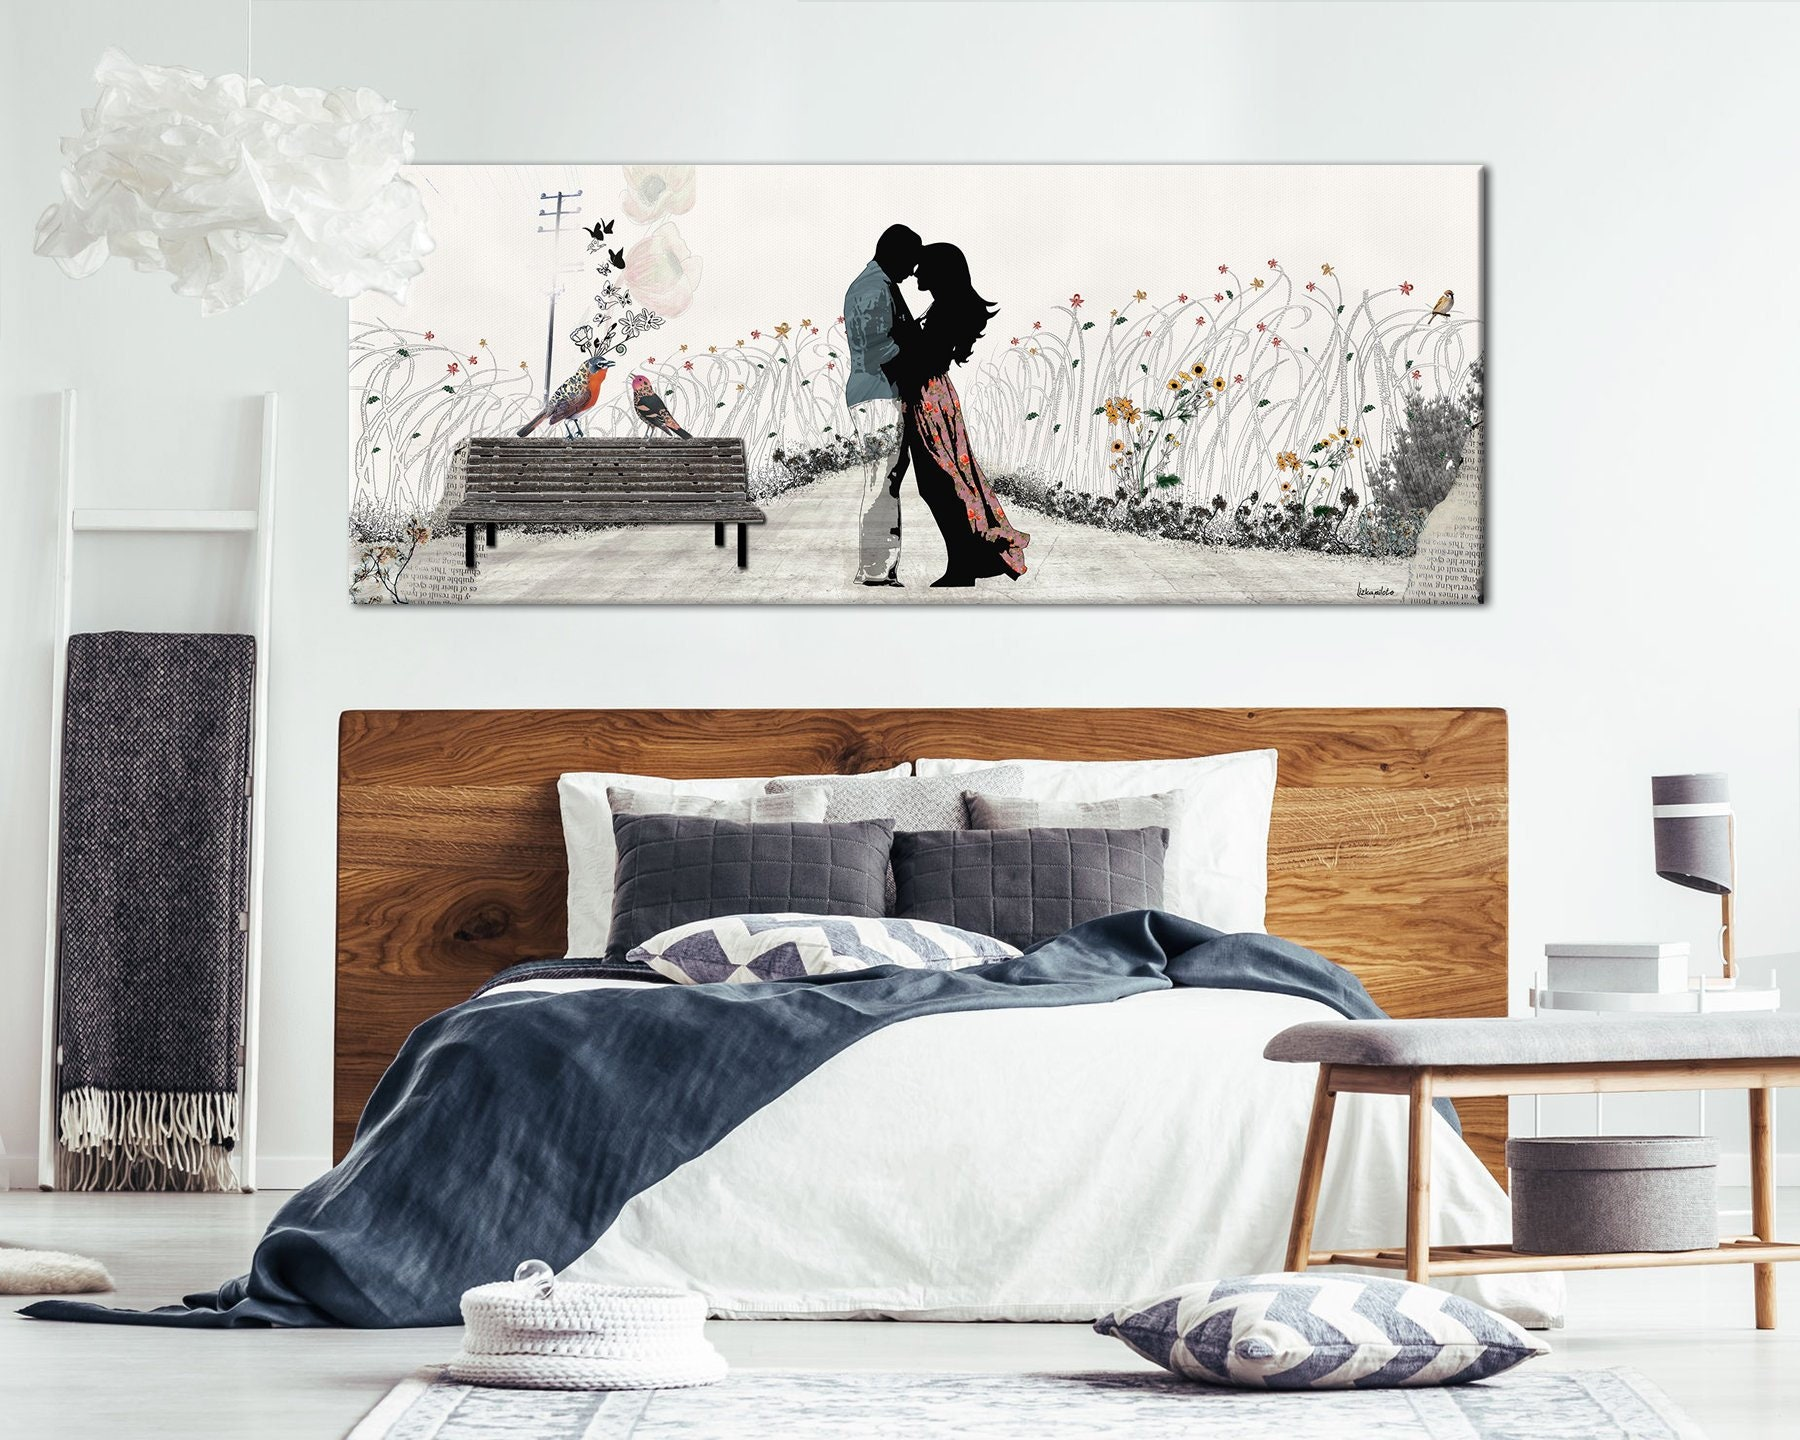 Groovy Couple In Love Painting Bedroom Wall Art Canvas Large Canvas Print Romantic Art Large Wall Art Bedroom Decor Bedroom Art Home Interior And Landscaping Palasignezvosmurscom